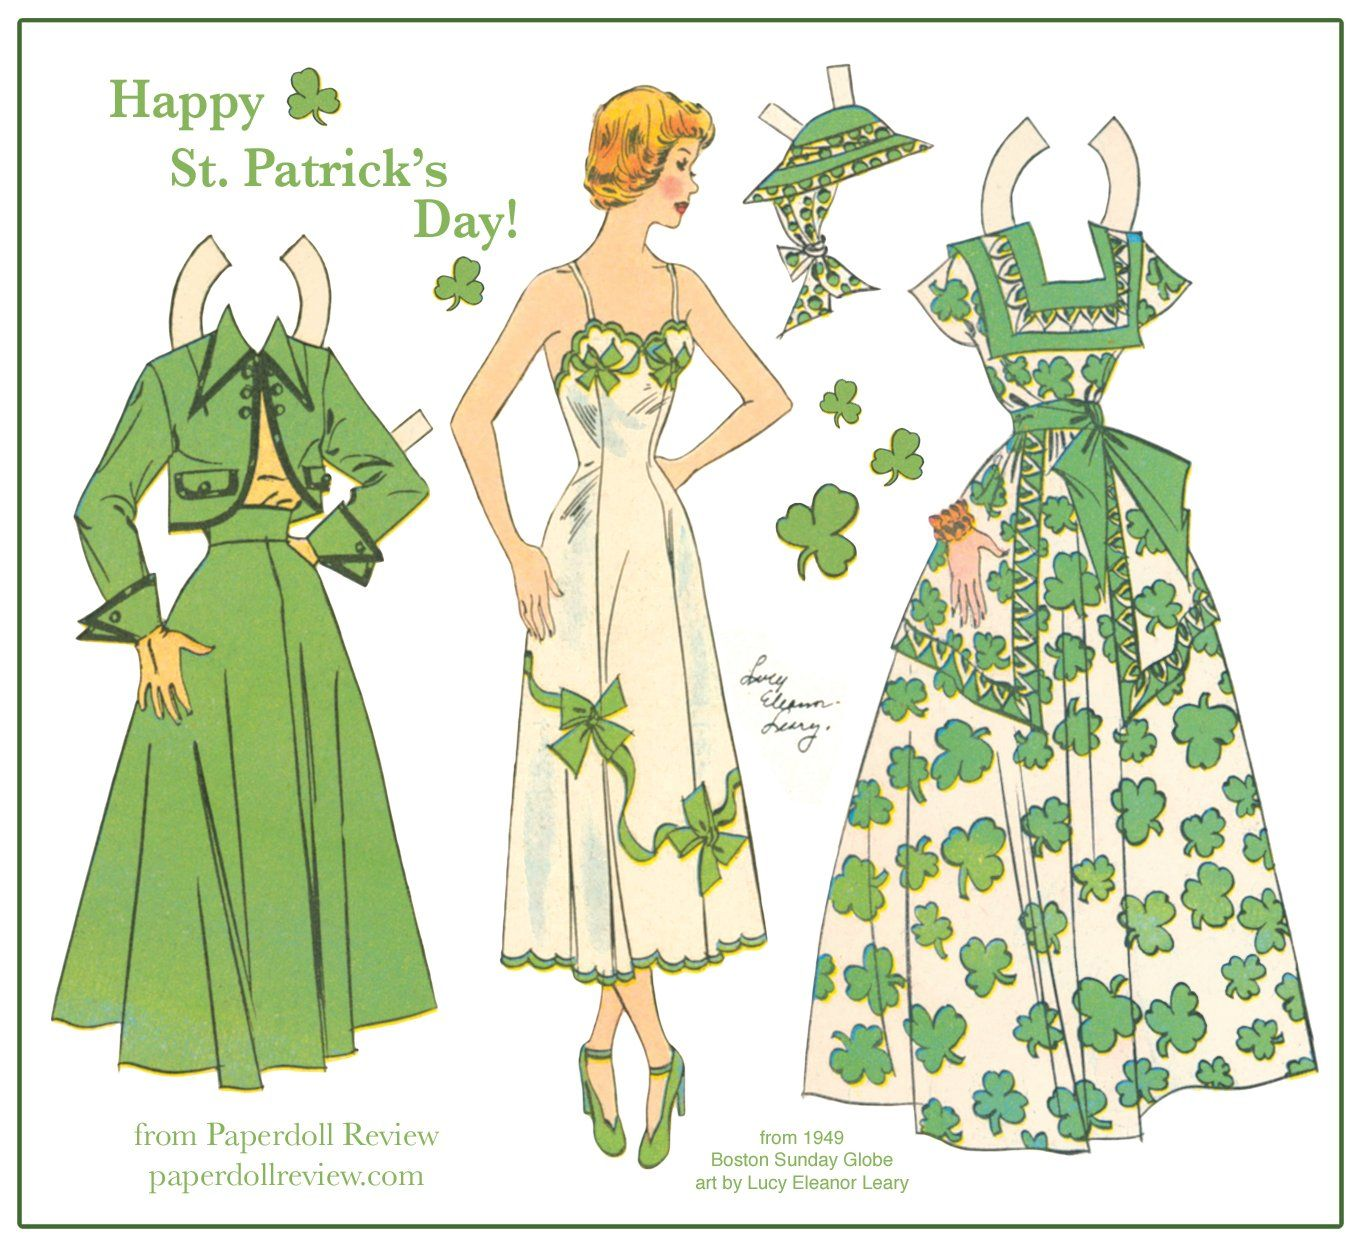 Happy St. Patrick's Day from Paperdoll Review! Here's a pretty little lass with a shamrock frock and smart suit from the Boston Sunday Globe, with art by Lucy Eleanor Leary, 1949.